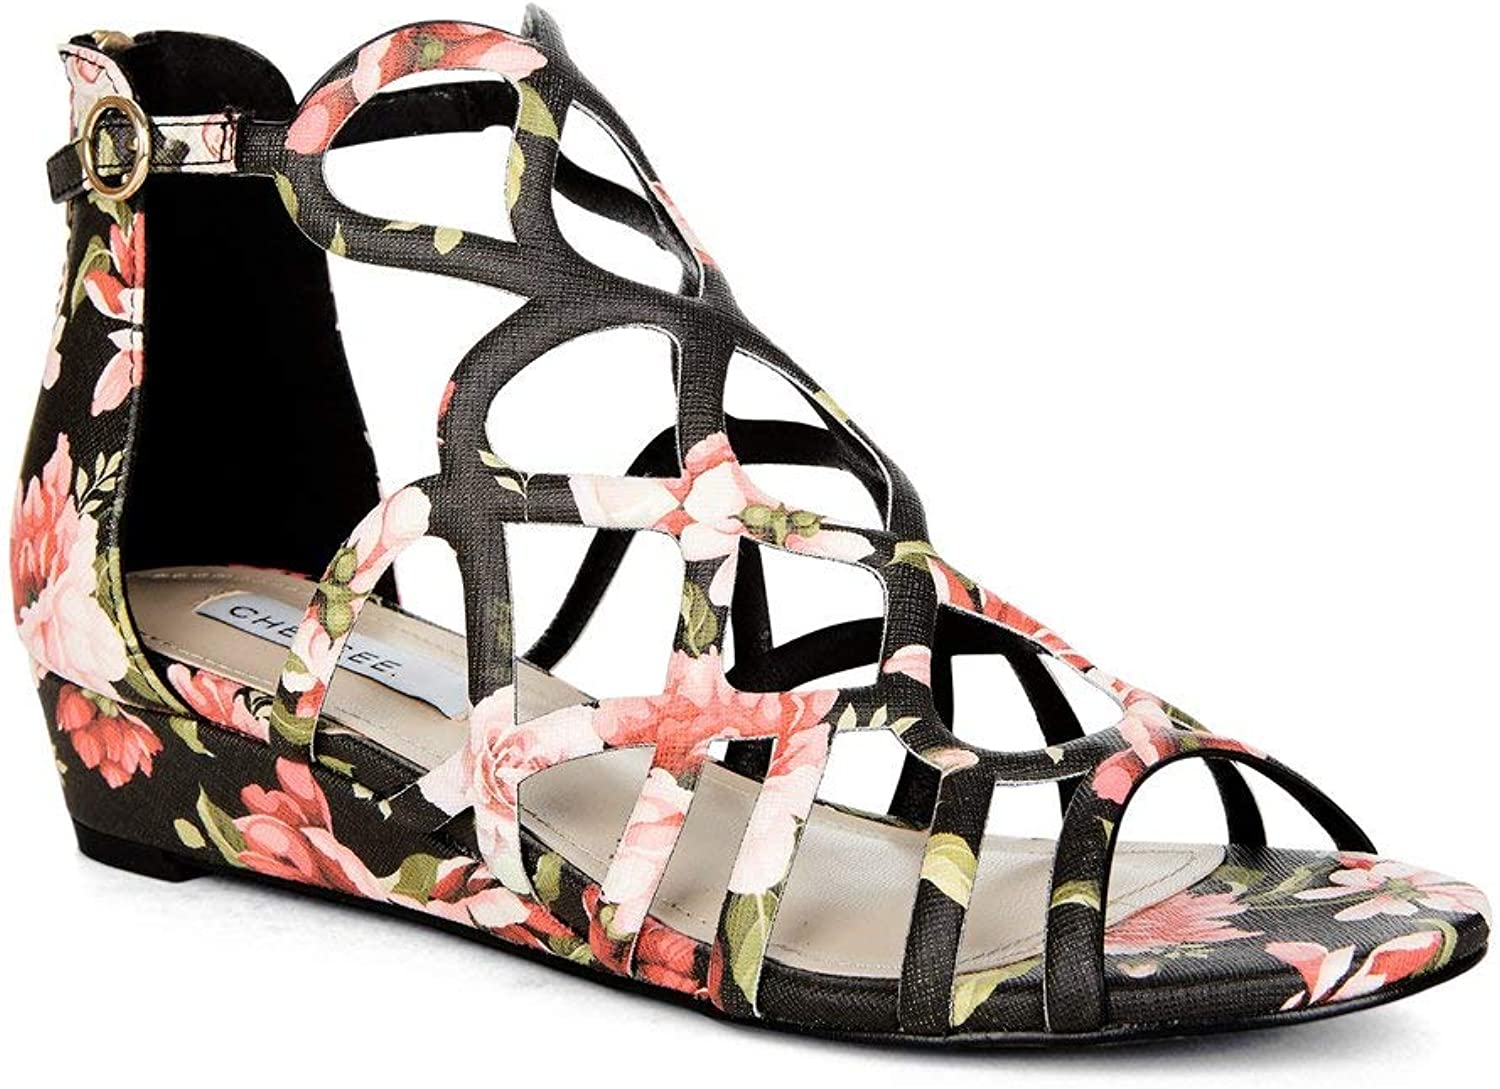 Yellow shoes - Addiction Floral - Women's Low Wedge Heel & Floral Sandals